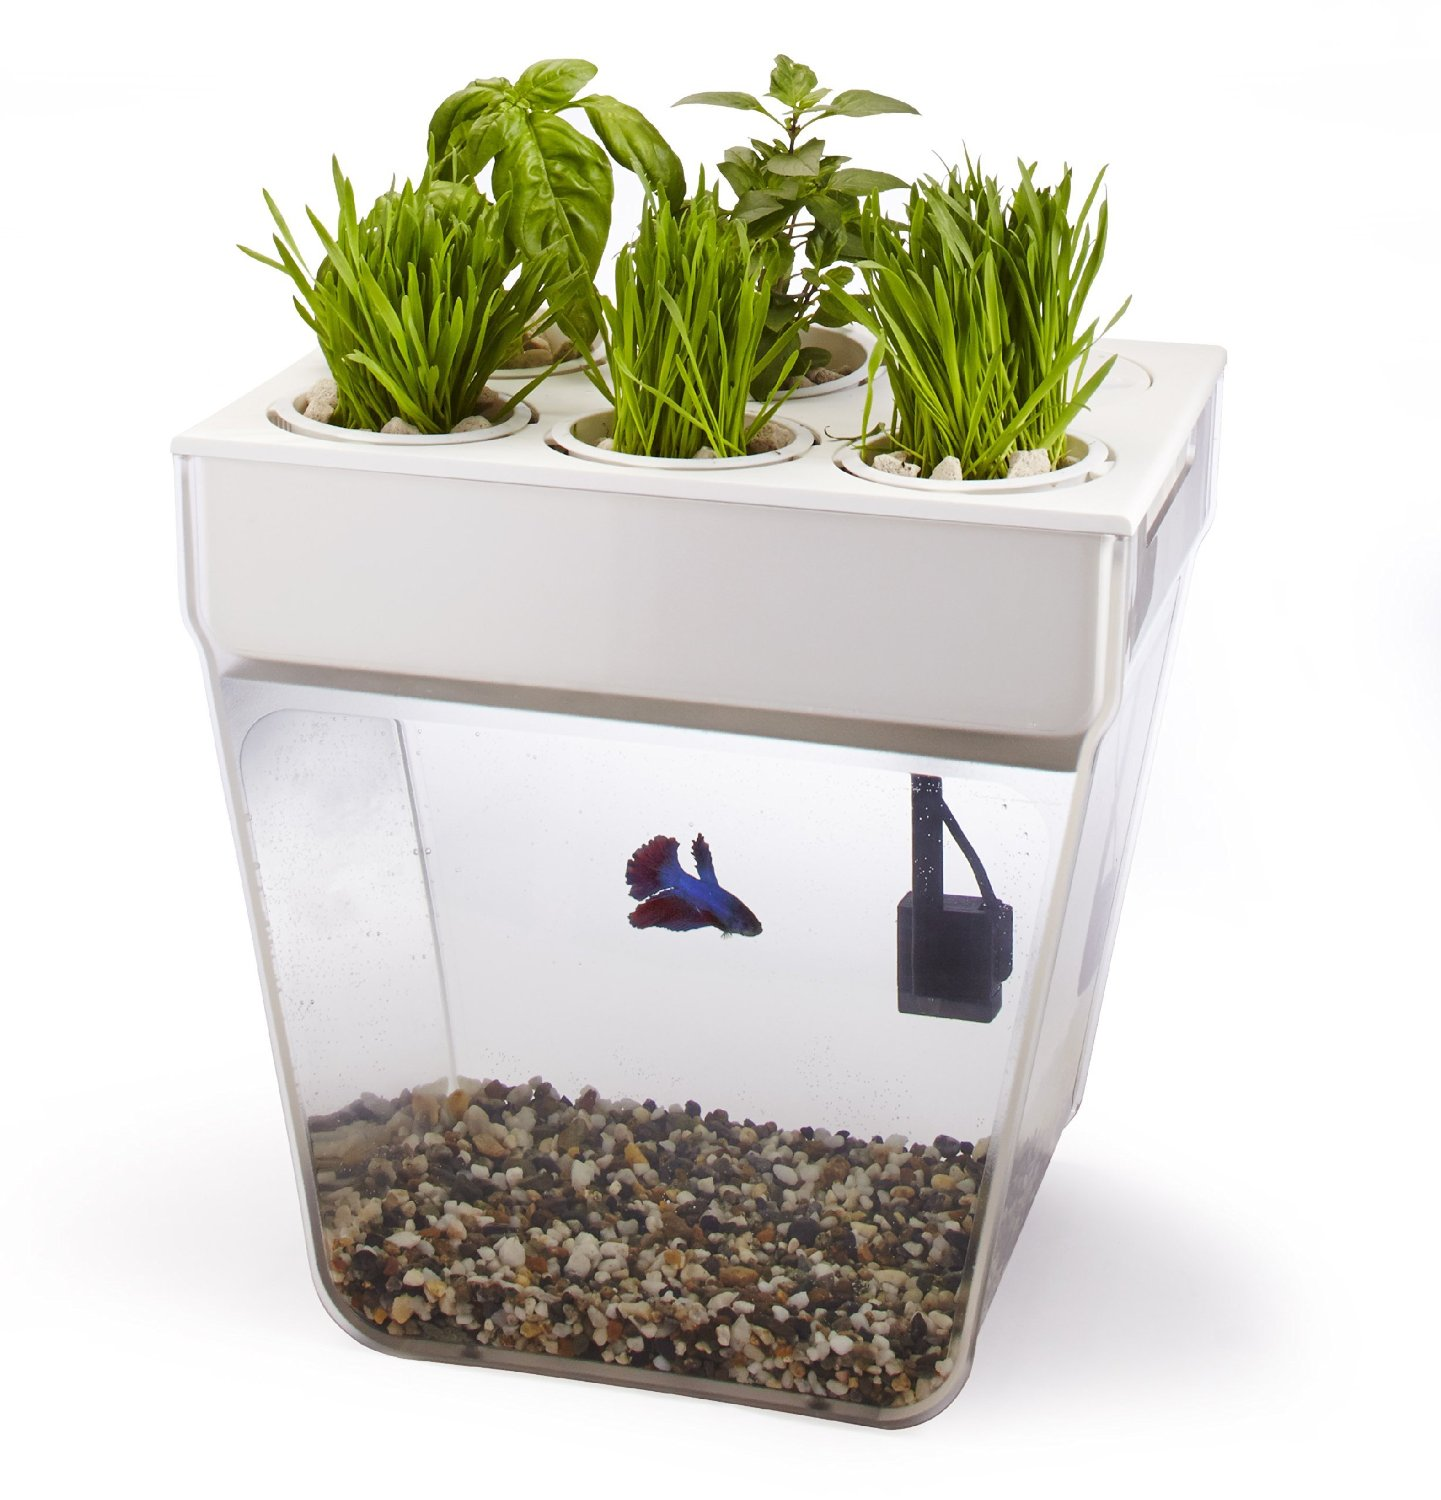 Self Cleaning Fish Bowl and Herb Garden Gadgets, Gizmos and Cool ...